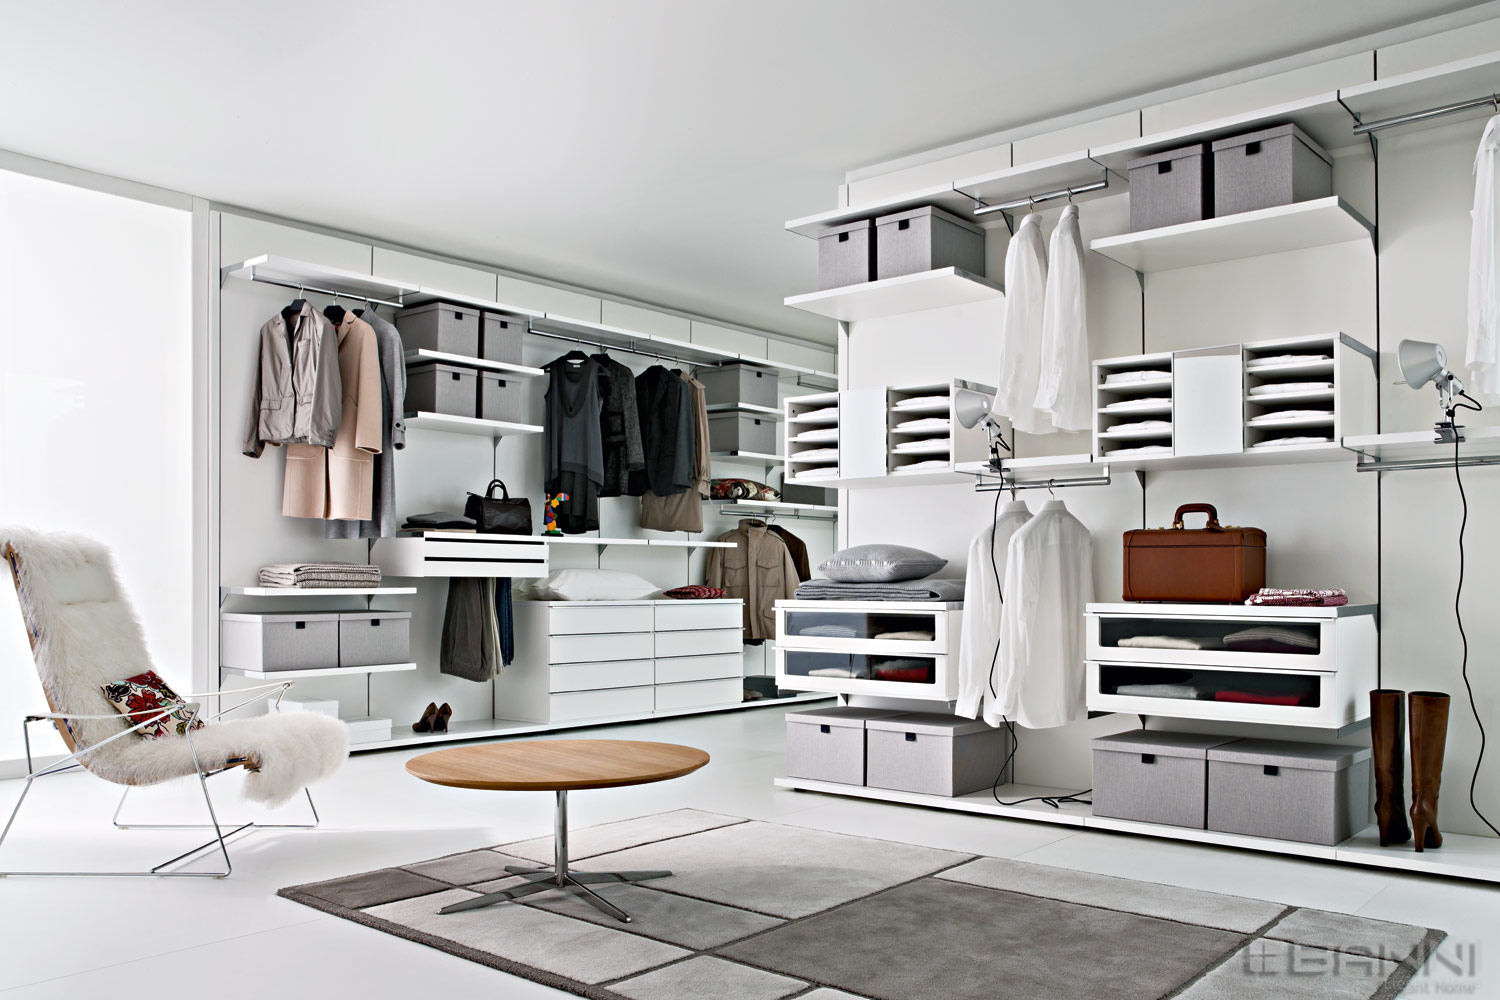 BANNI - Walk-in closets and custom wardrobes in Marbella